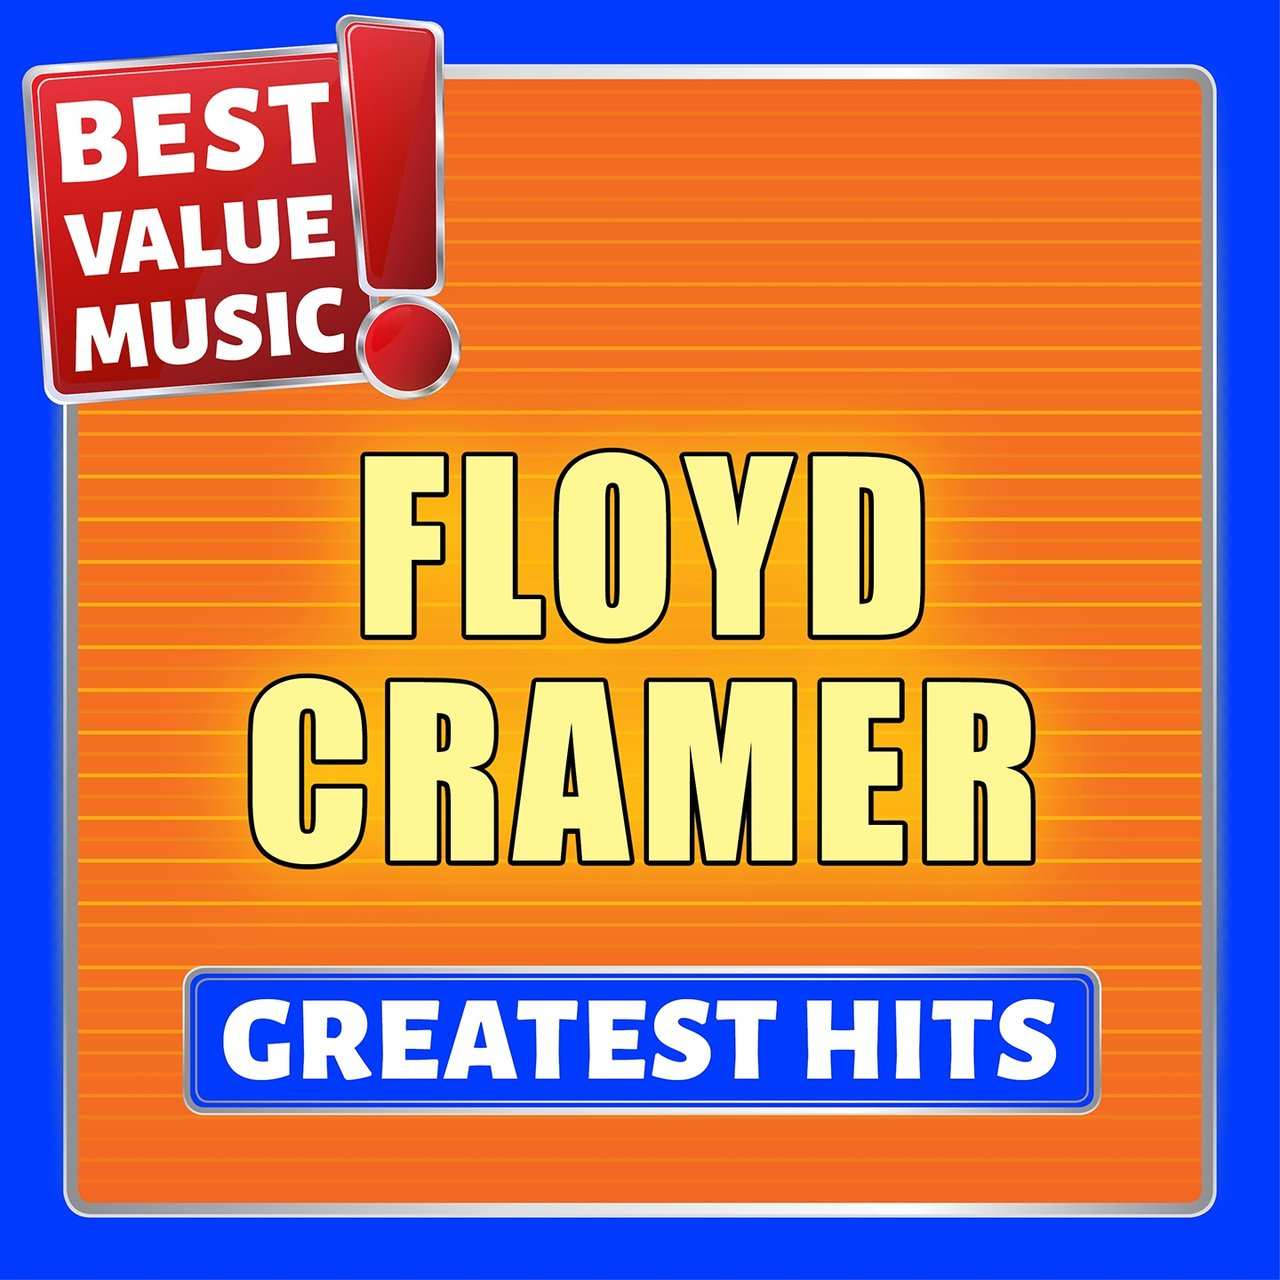 Floyd Cramer - Greatest Hits